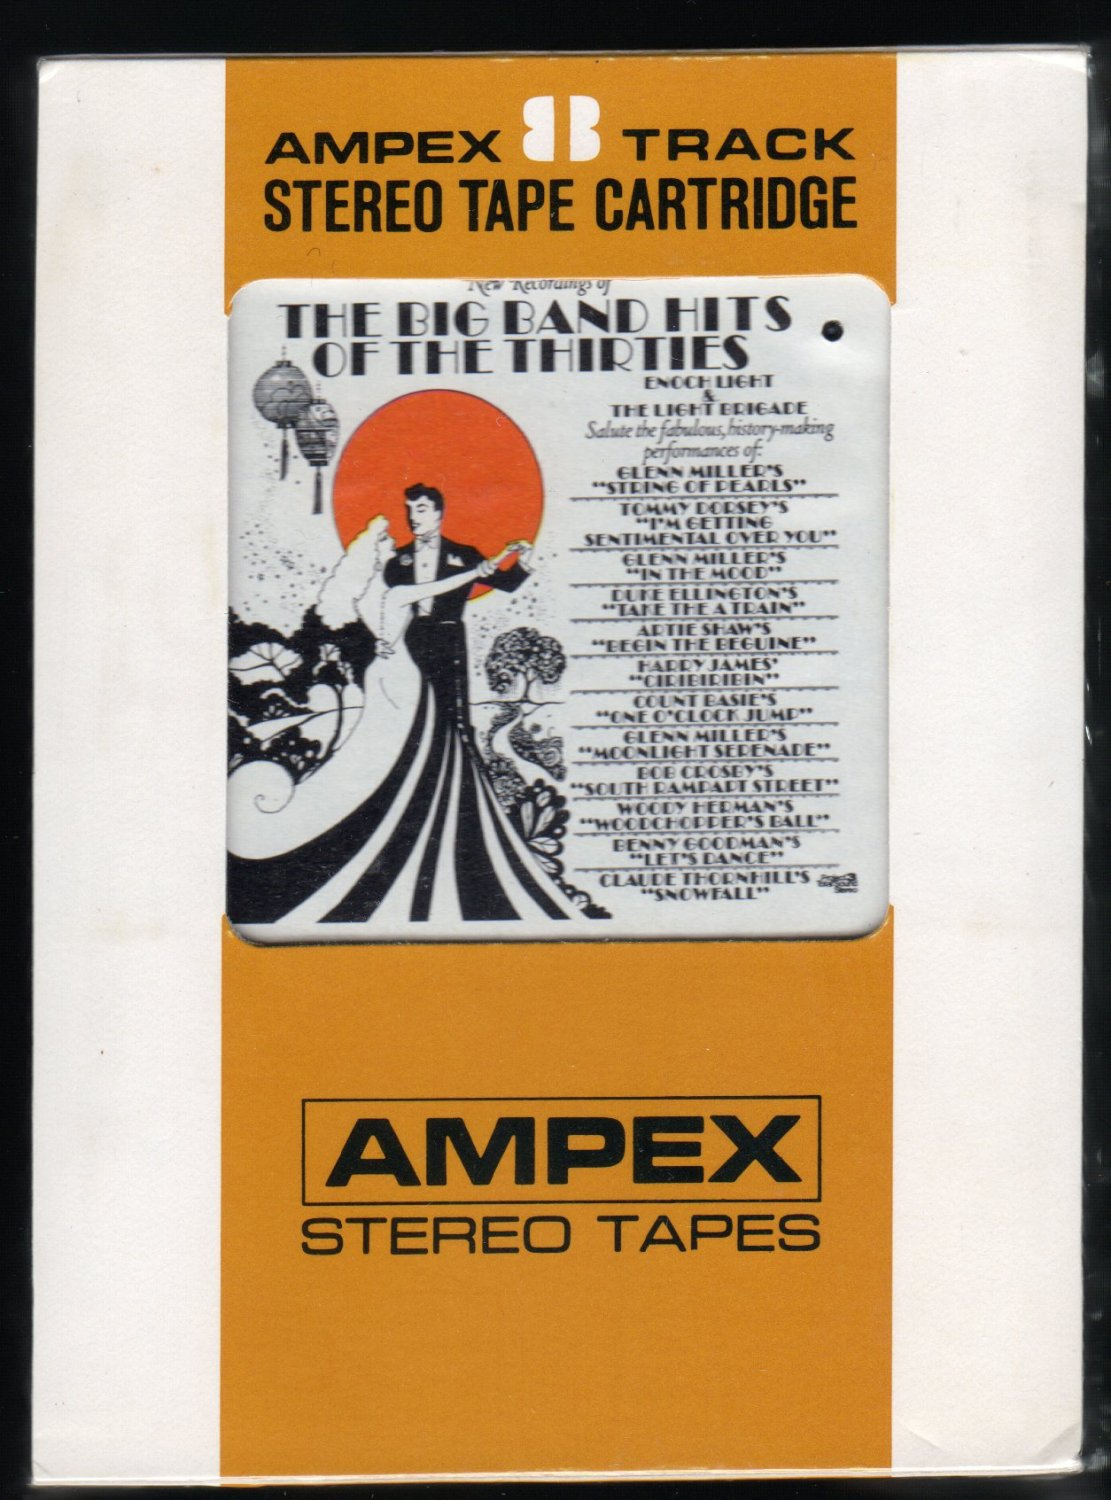 Enoch Light & Light Brigade - Big Band Hits Of The 30's 1971 AMPEX PROJECT3 Sealed A4 8-TRACK TAPE